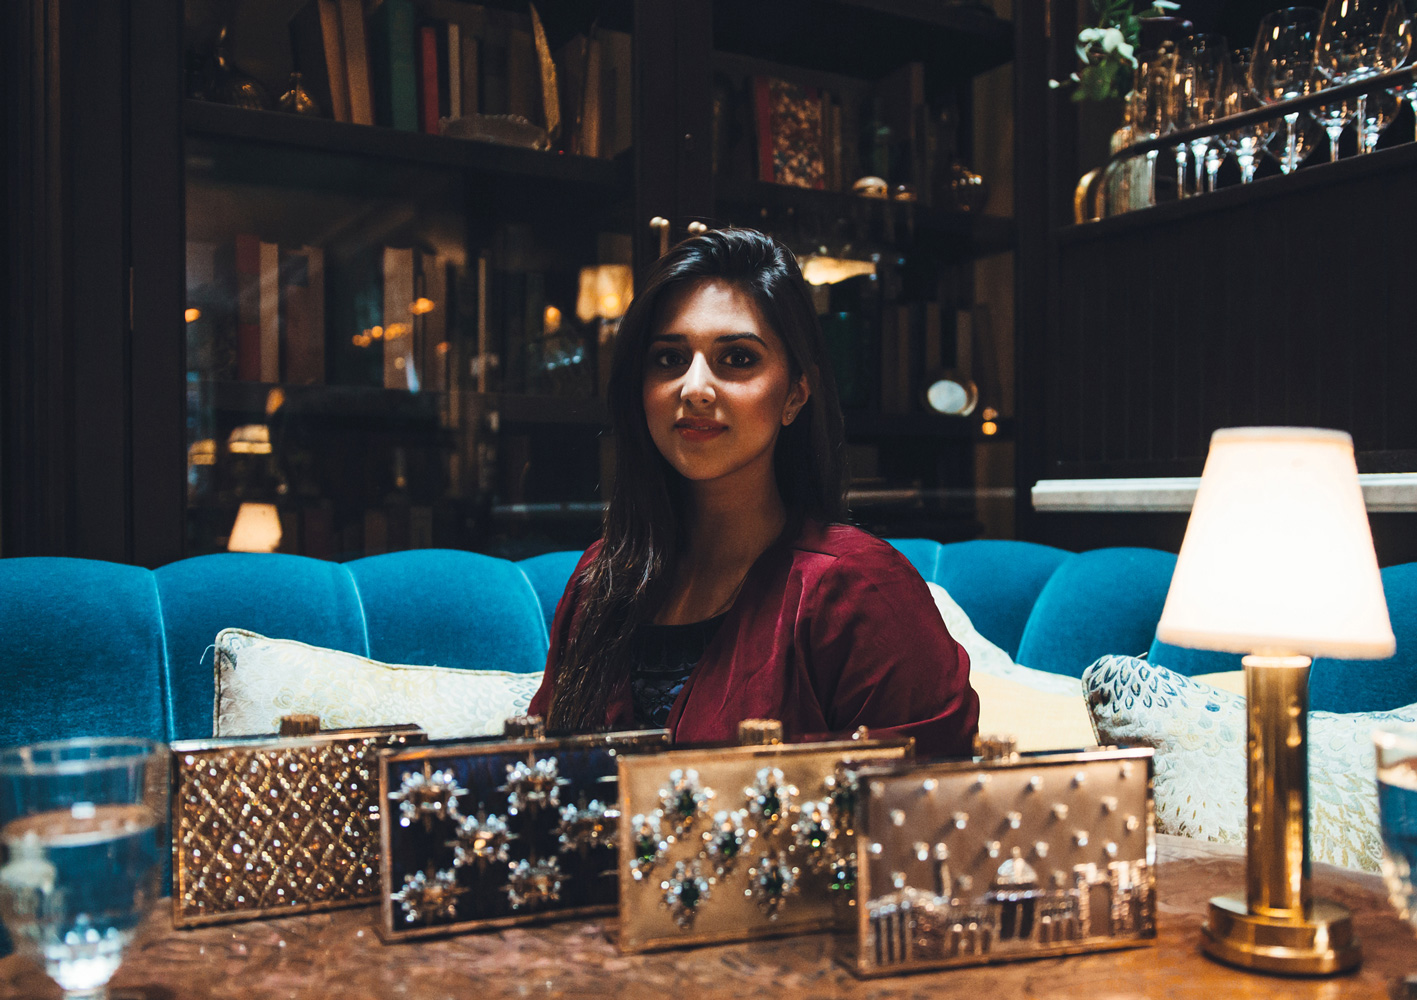 Minza Khan's Clutch Collection